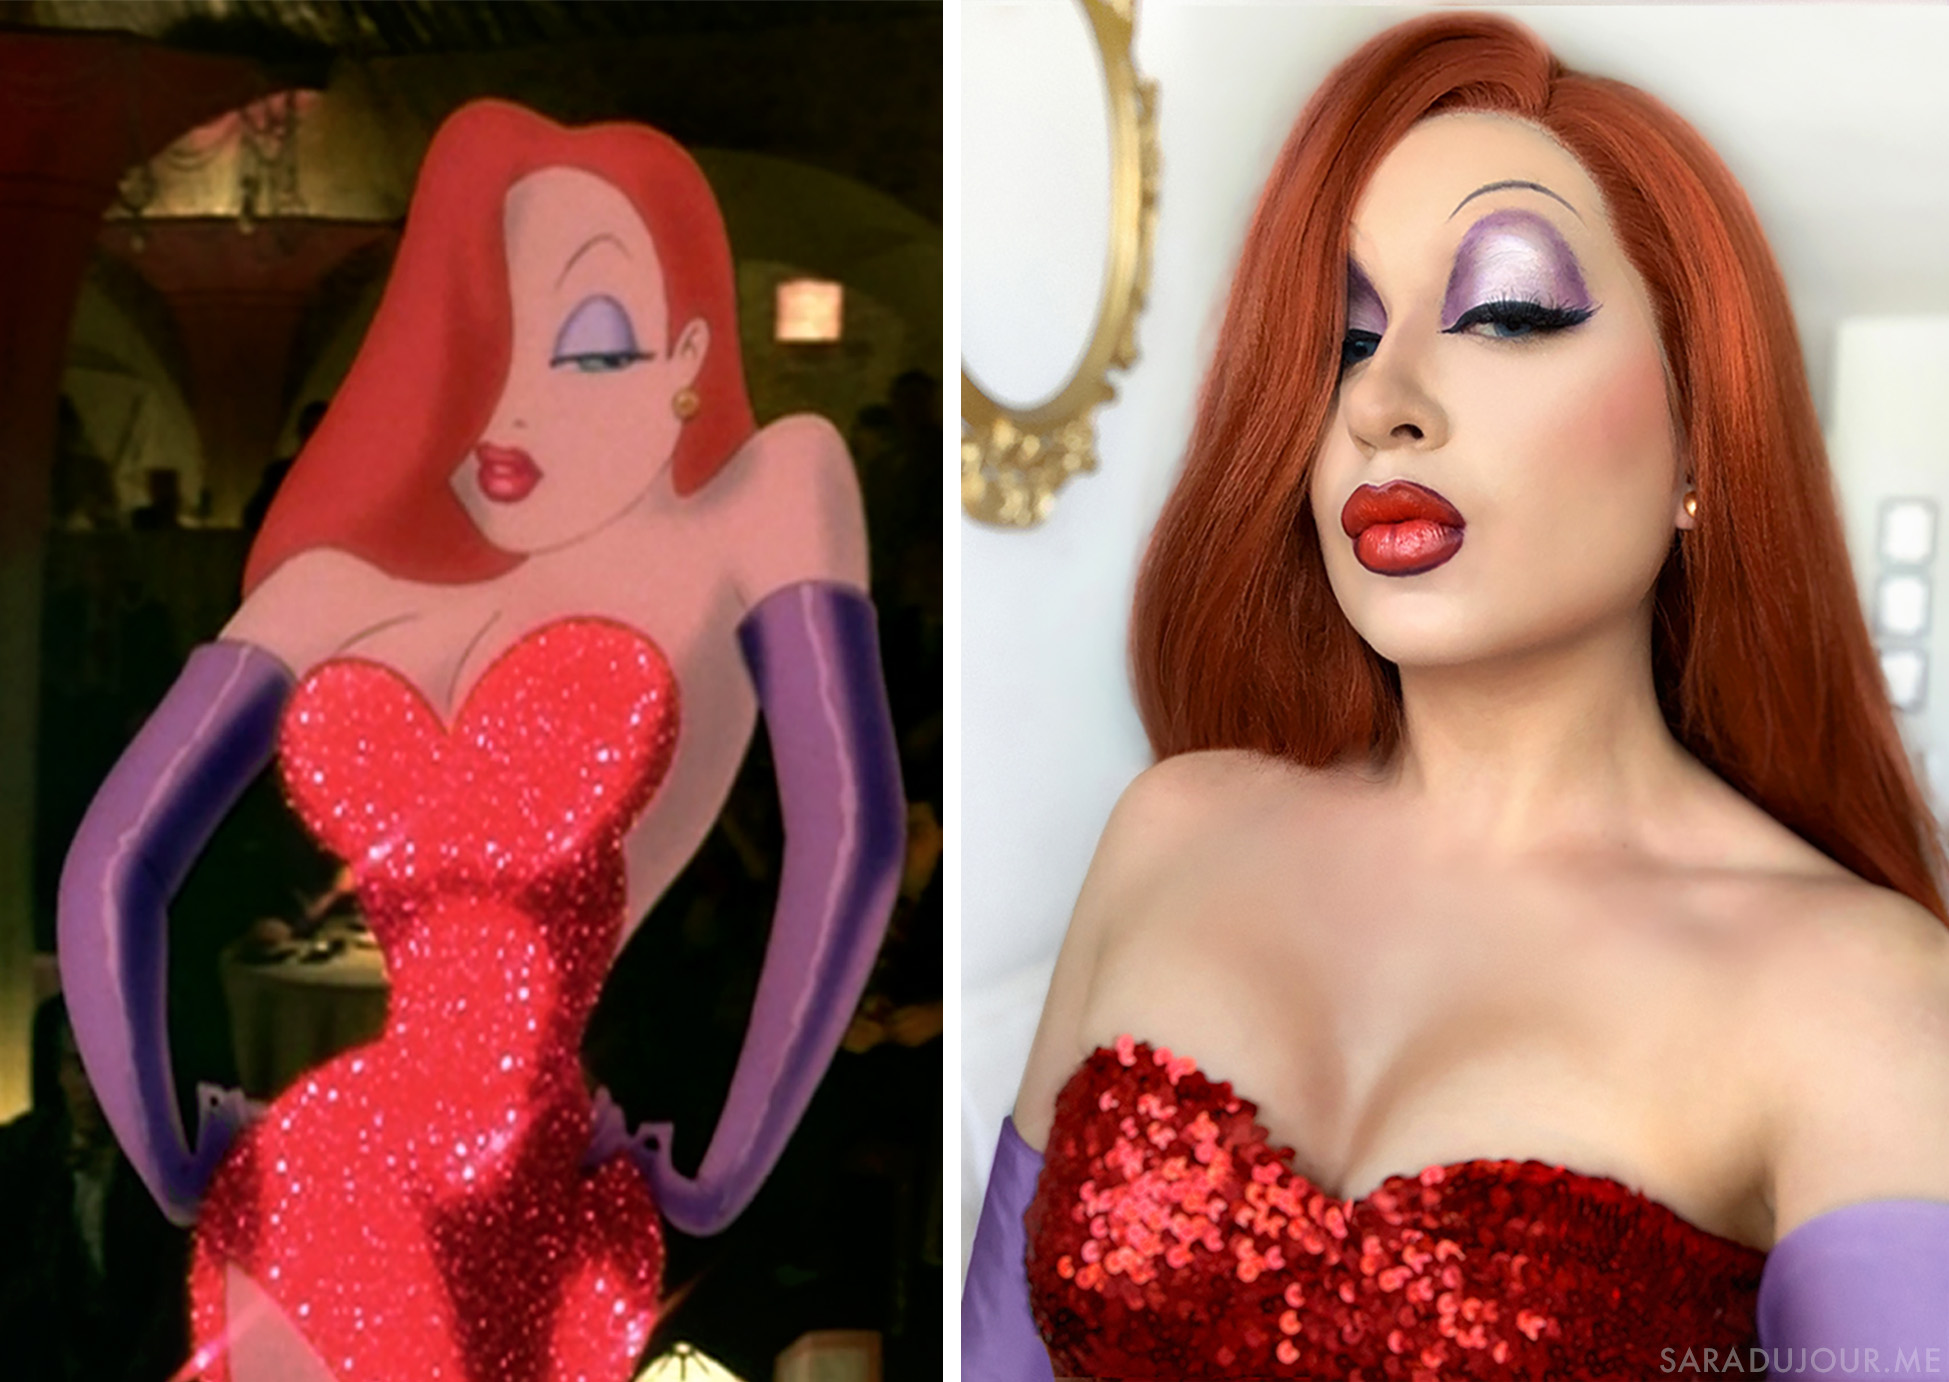 Jessica Rabbit Halloween Costume + Cosplay | Sara du Jour